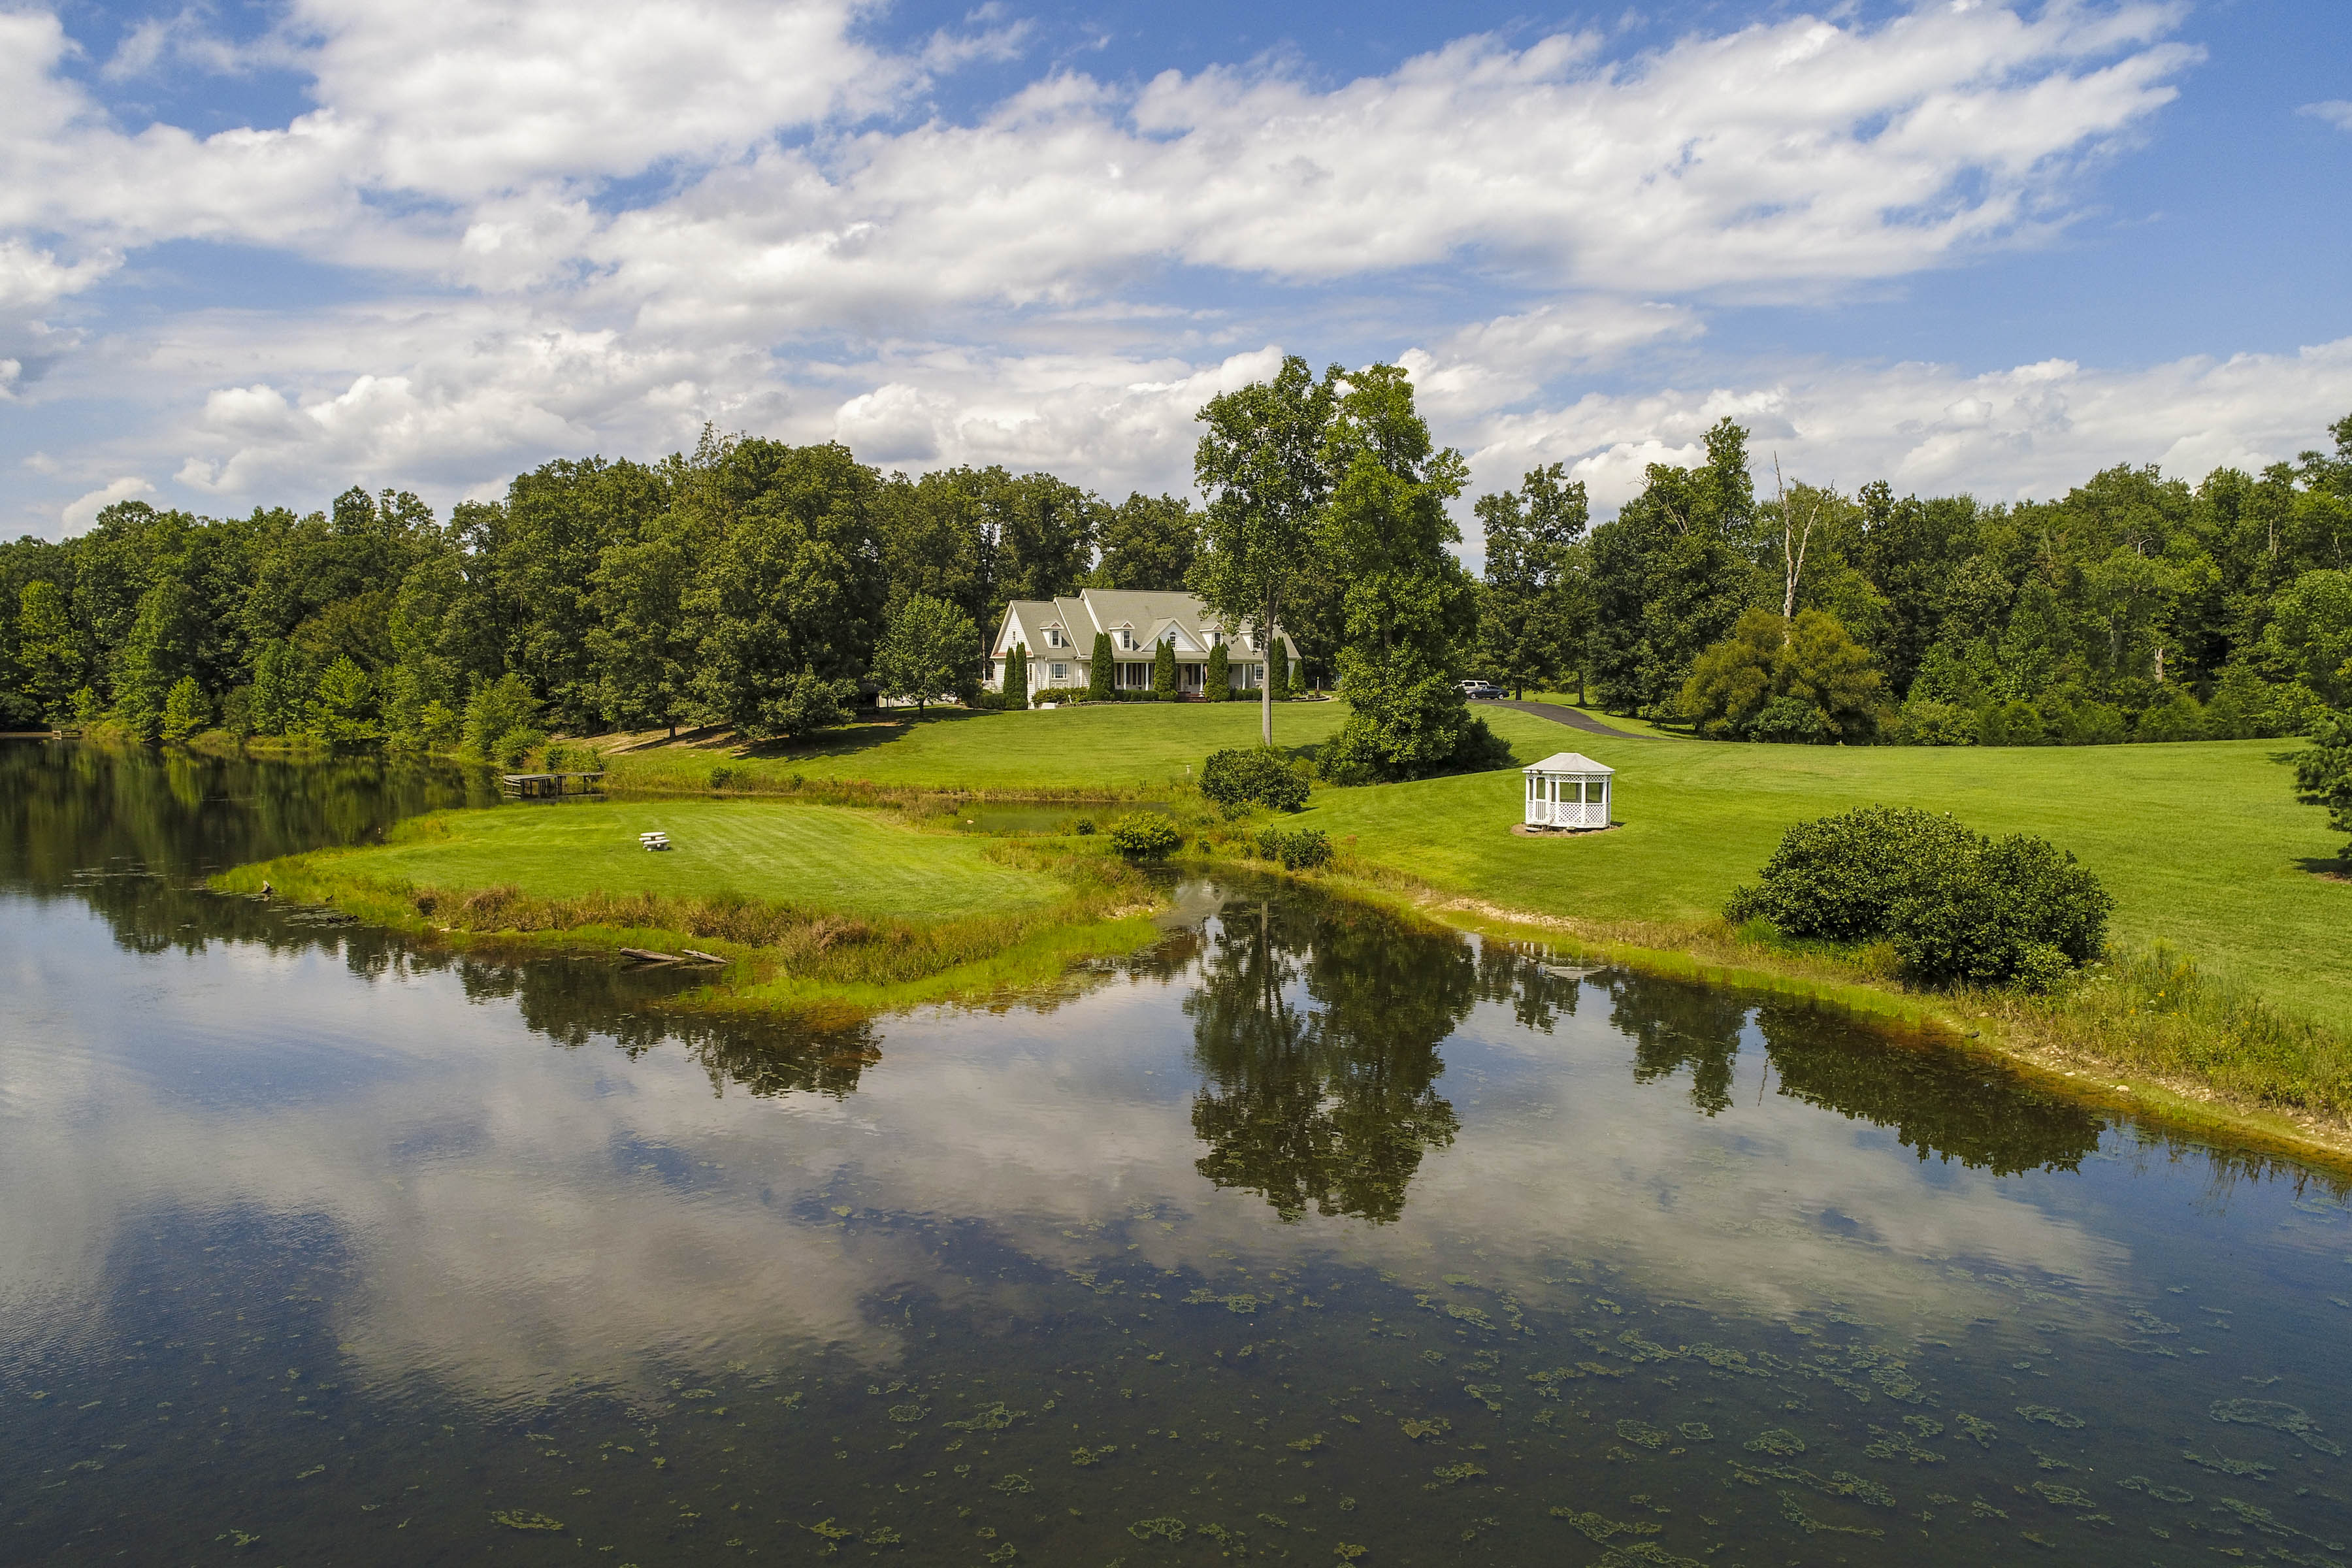 Home of the Week: 10 acres, private pond